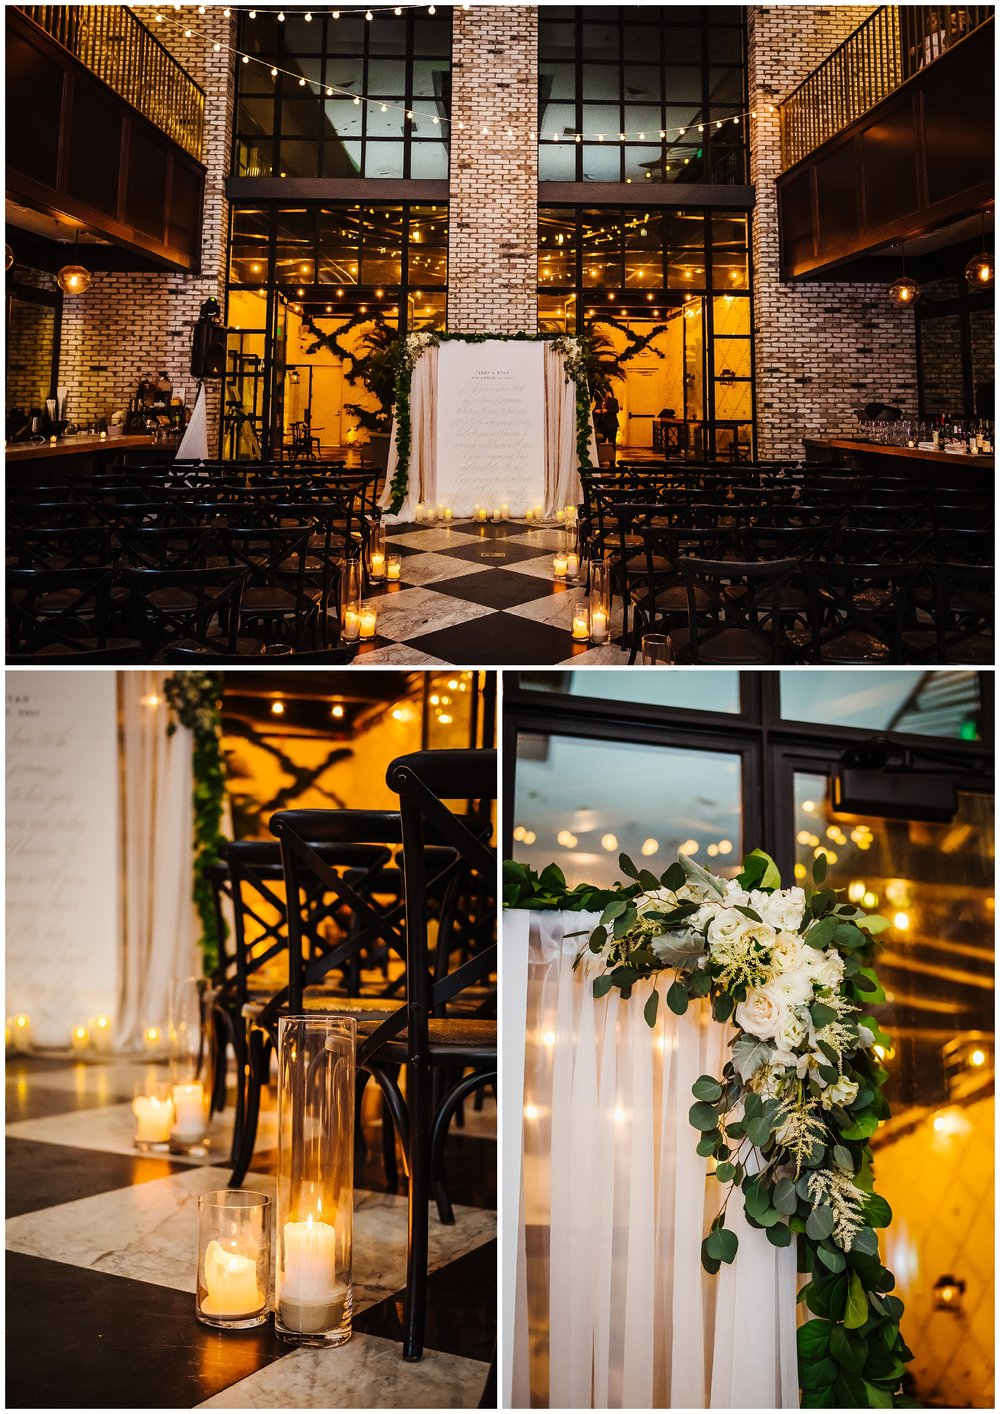 tampa-wedding-photographer-oxford-exchange-garland-candlelight-gold-hayley-paige_0041.jpg